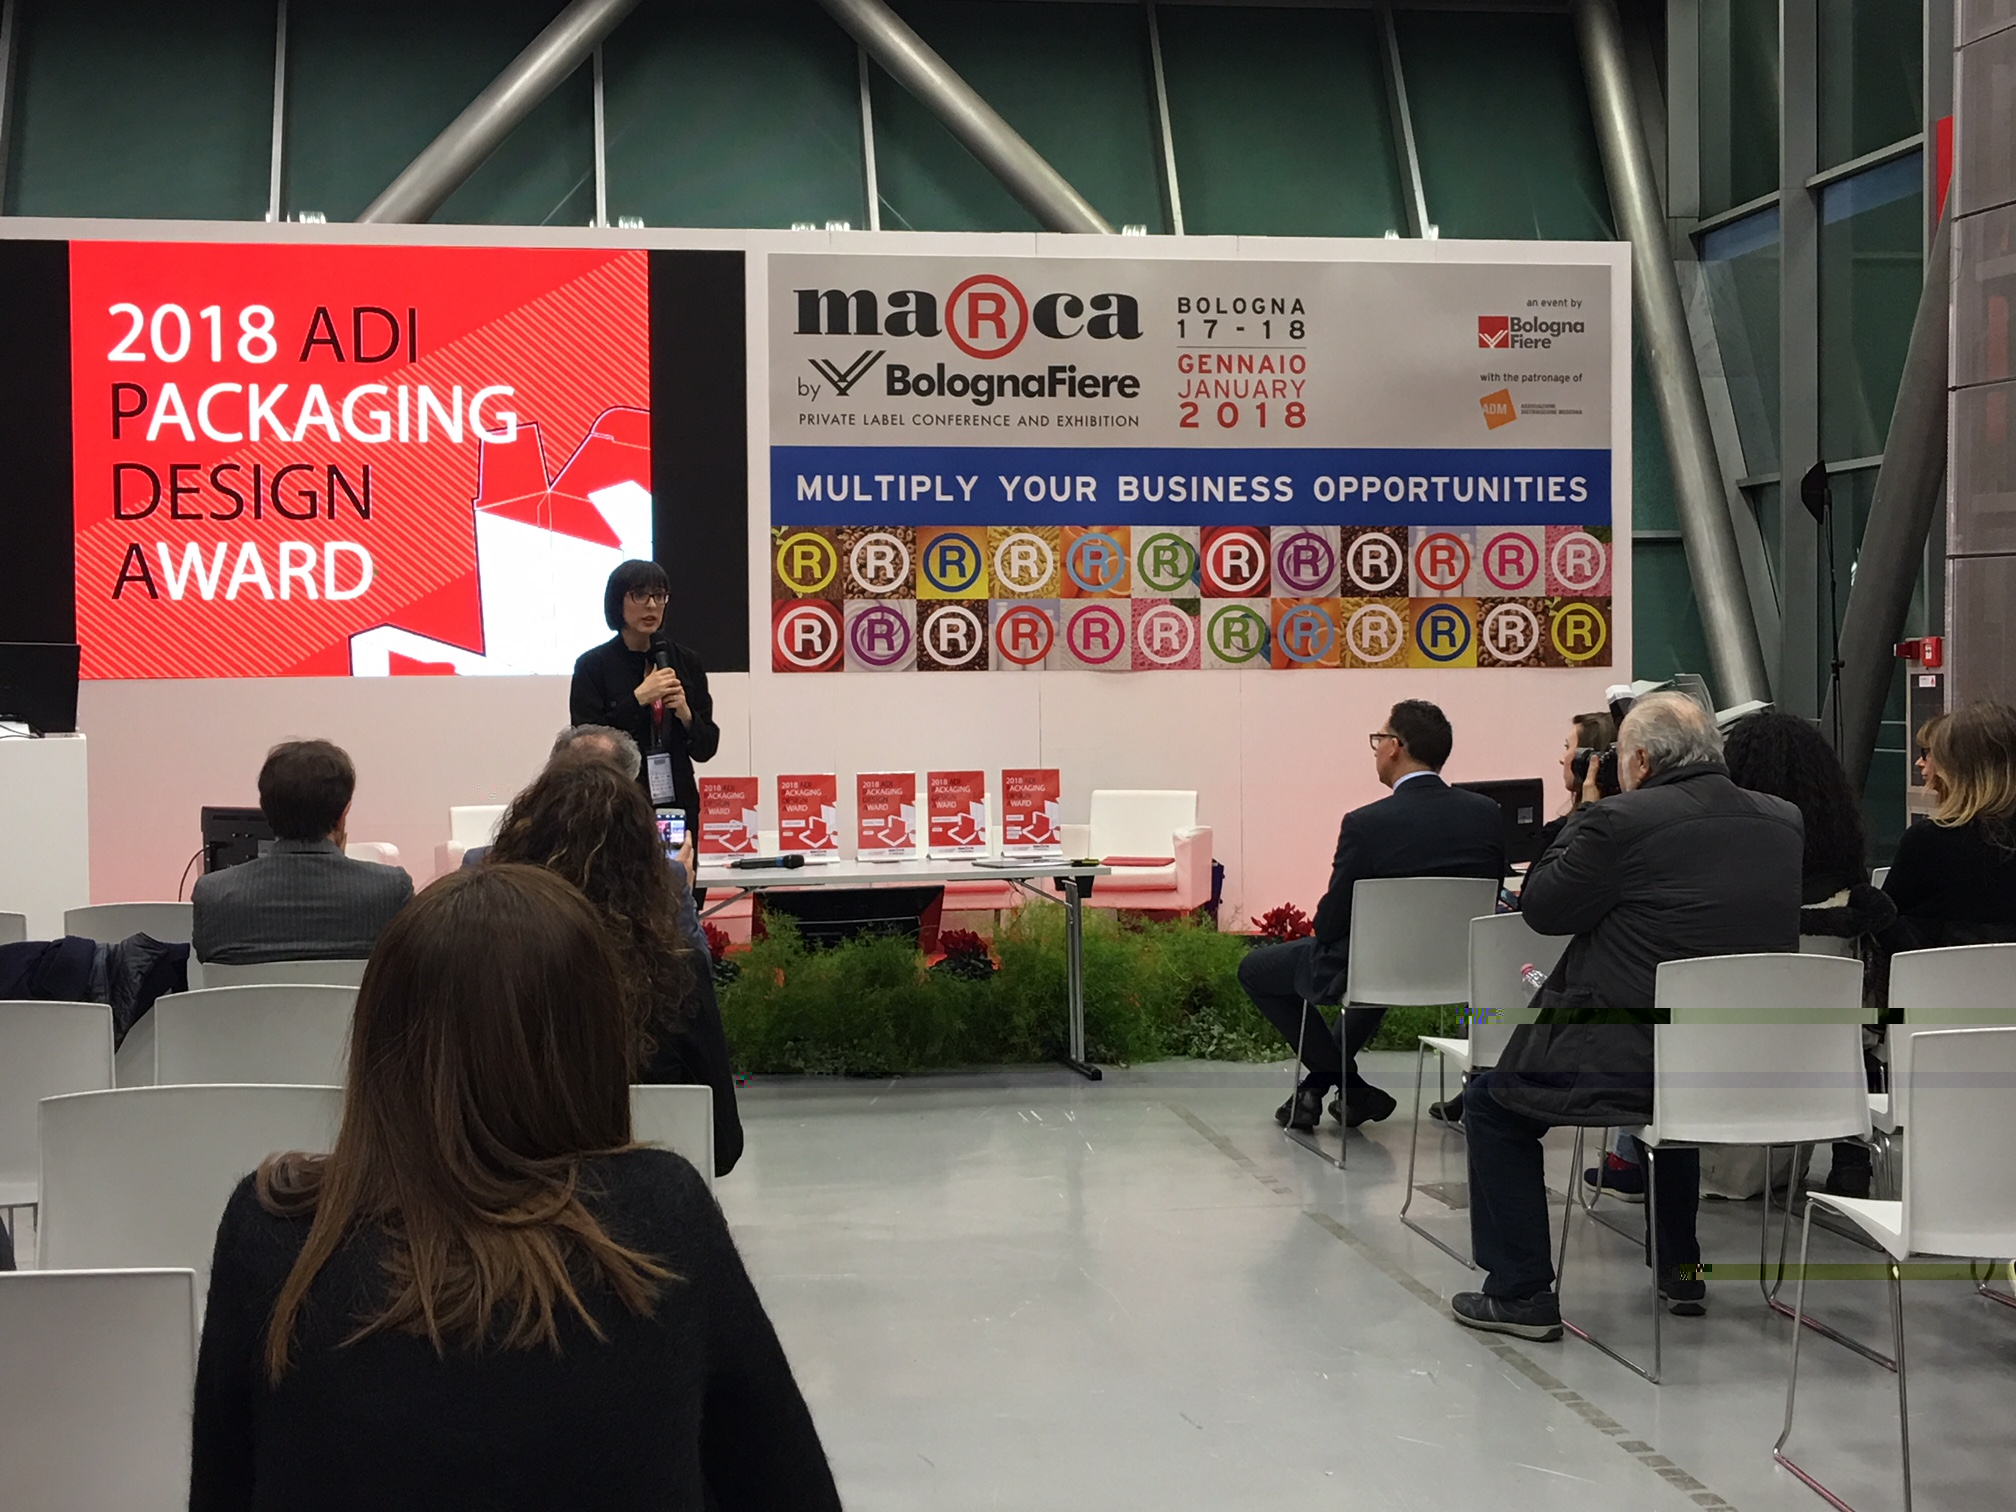 ADI packaging award fiera marca 2018